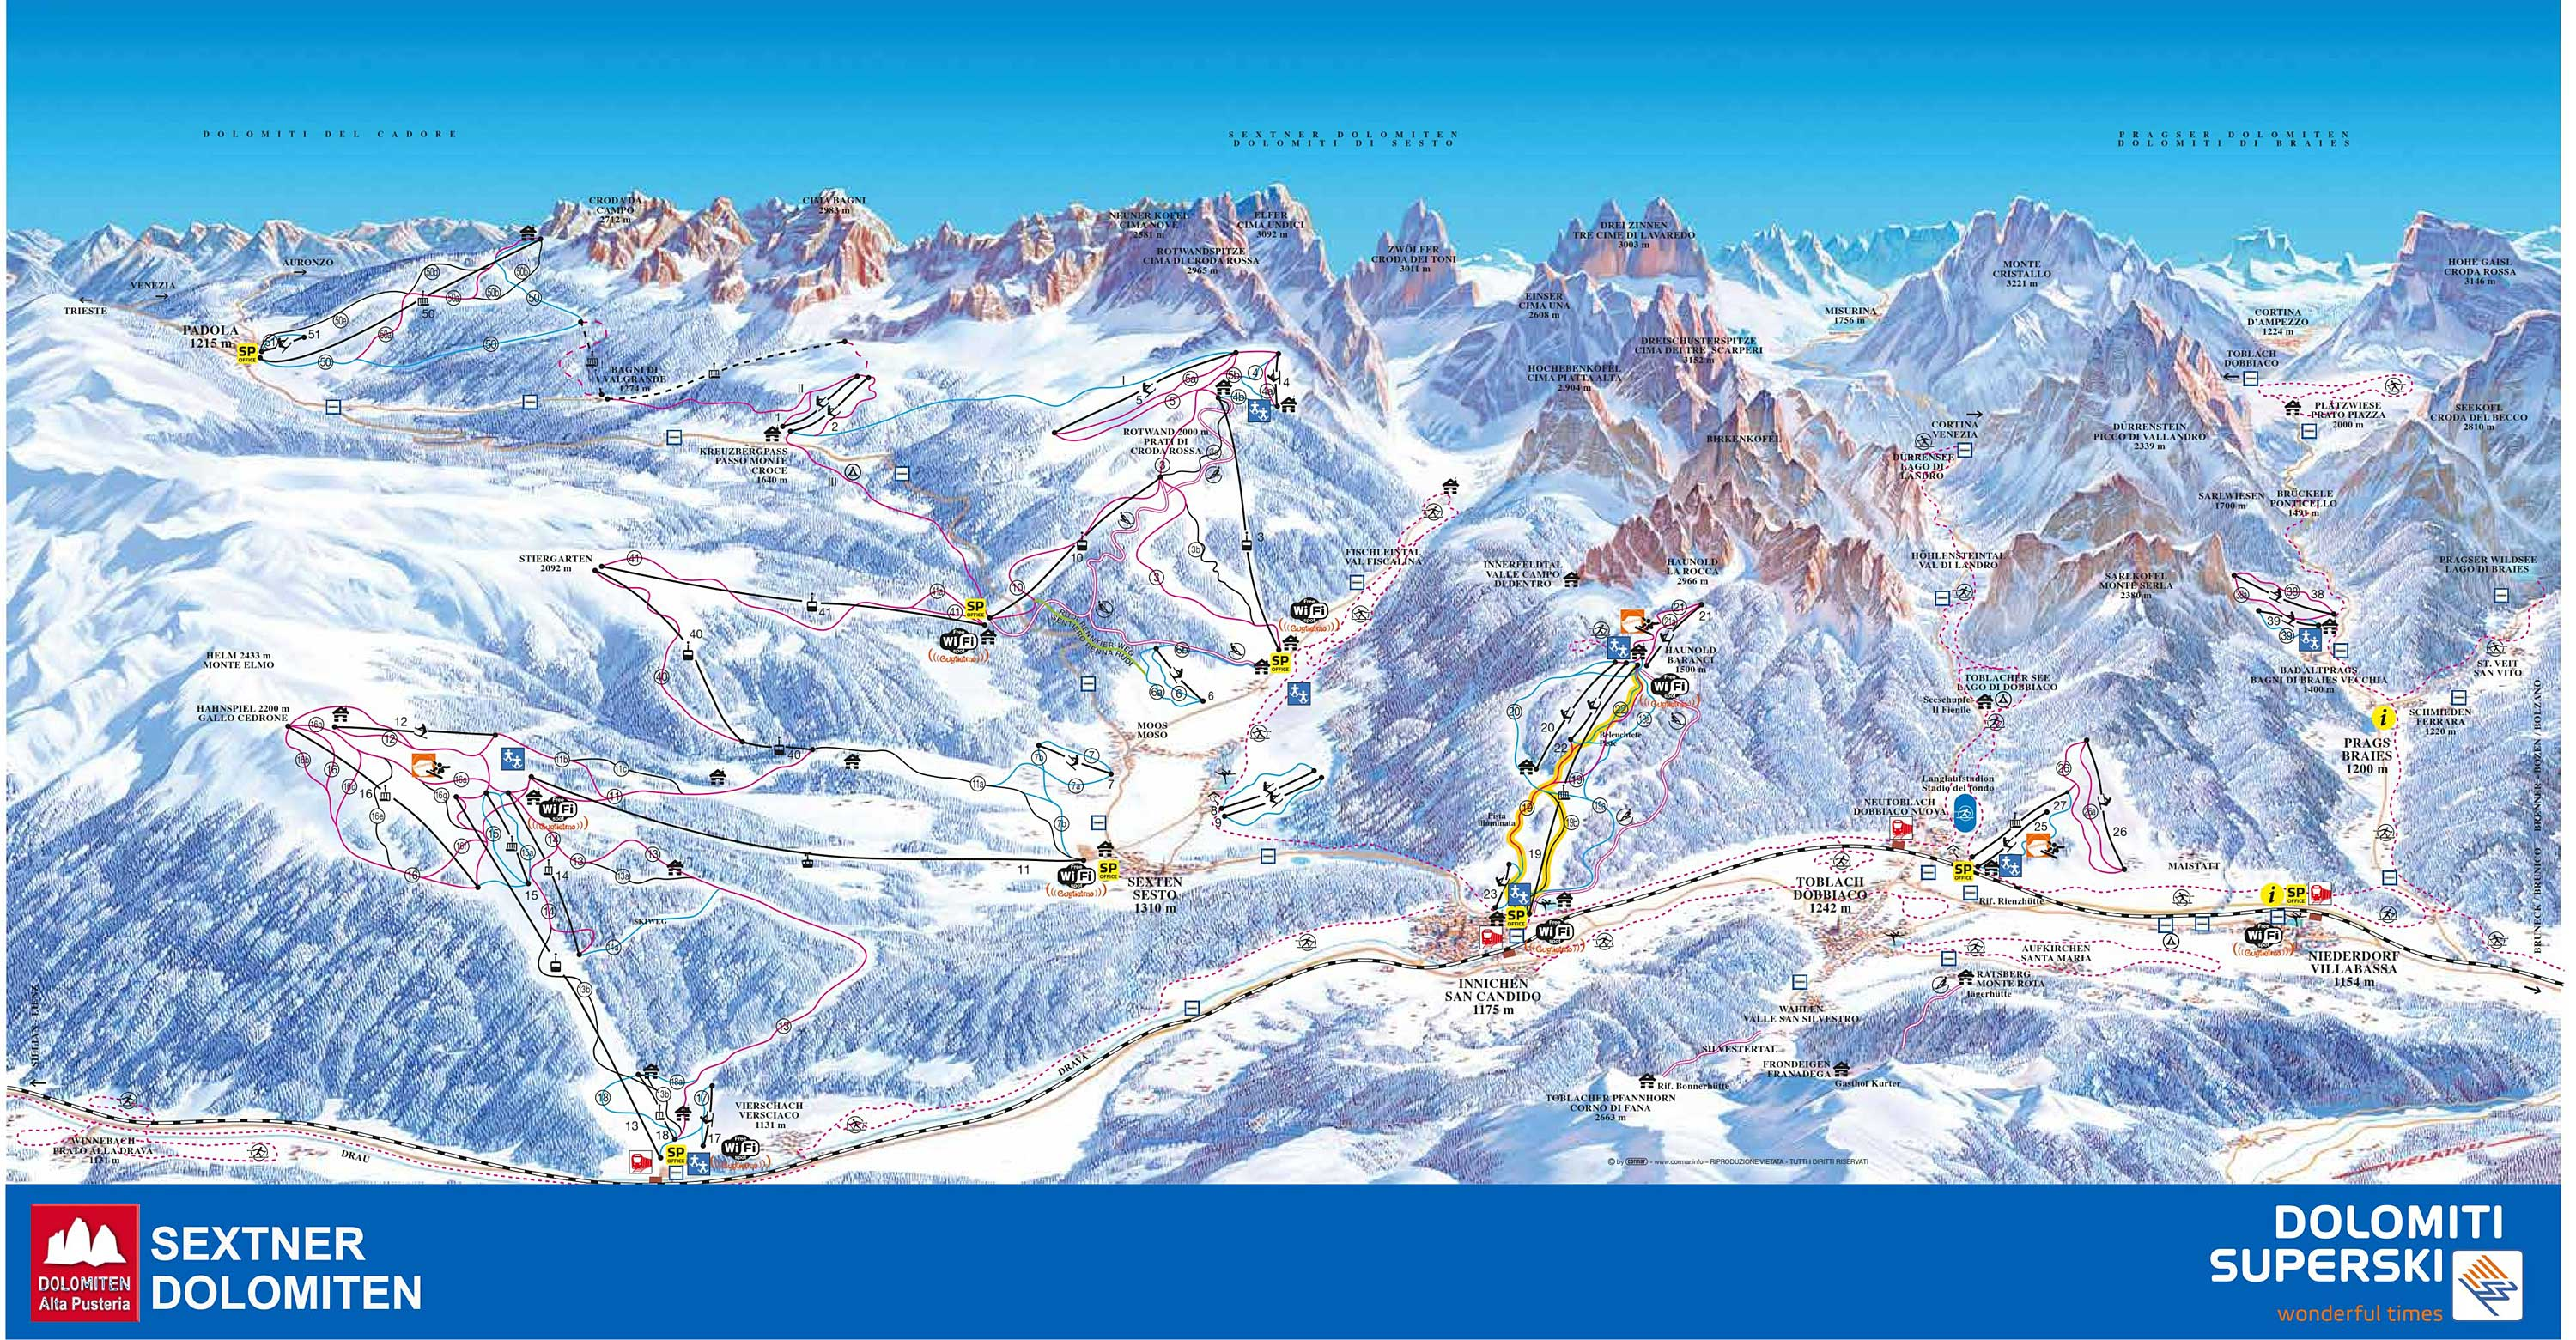 Pistes Map of Dobbiaco